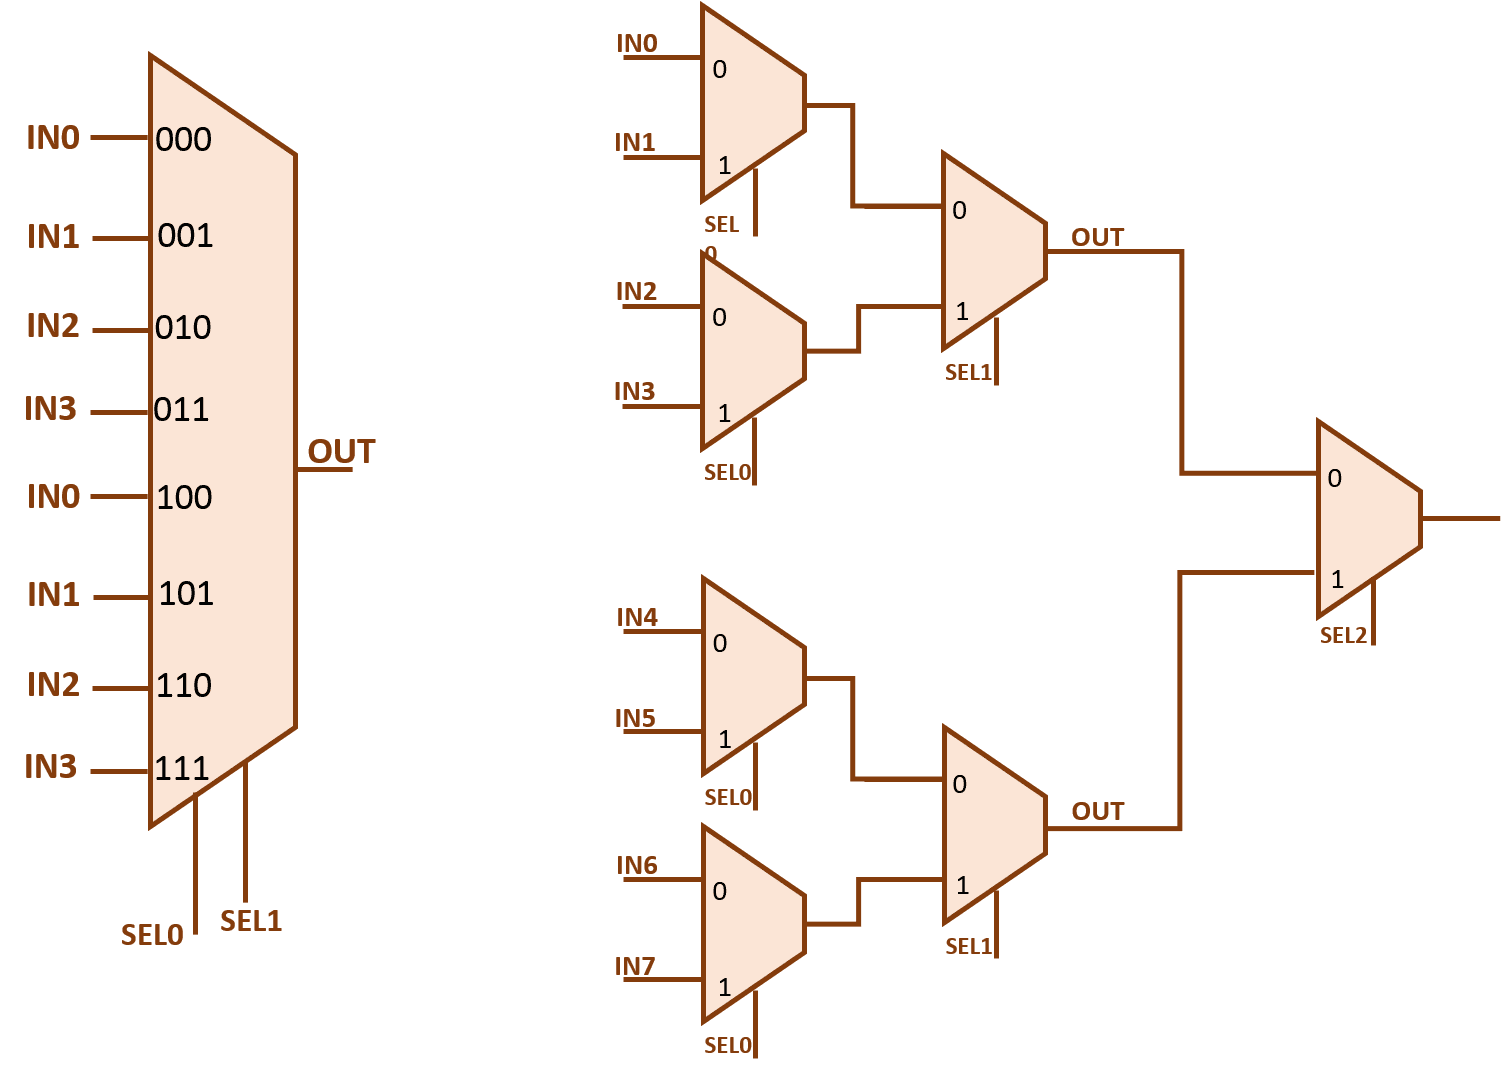 Circuit Diagram Of 8 To 1 Multiplexer | Wiring Diagram on 12 pin wiring diagram, stage pin wiring diagram, 3 wire wiring diagram, 4 pin wiring diagram, 3 pin cable, 7 pin wiring diagram, 3 lamp wiring diagram, 24 pin wiring diagram, 5 pin wiring diagram, 6 pin wiring diagram, 3 pin power, 10 pin connector wiring diagram, 3 pin plug, 3 pin relay diagram, 3 pin switches diagram, 3 phase wiring diagram, 8 pin wiring diagram, 3 pin switch diagram, 3 pin alternator diagram, 9 pin wiring diagram,